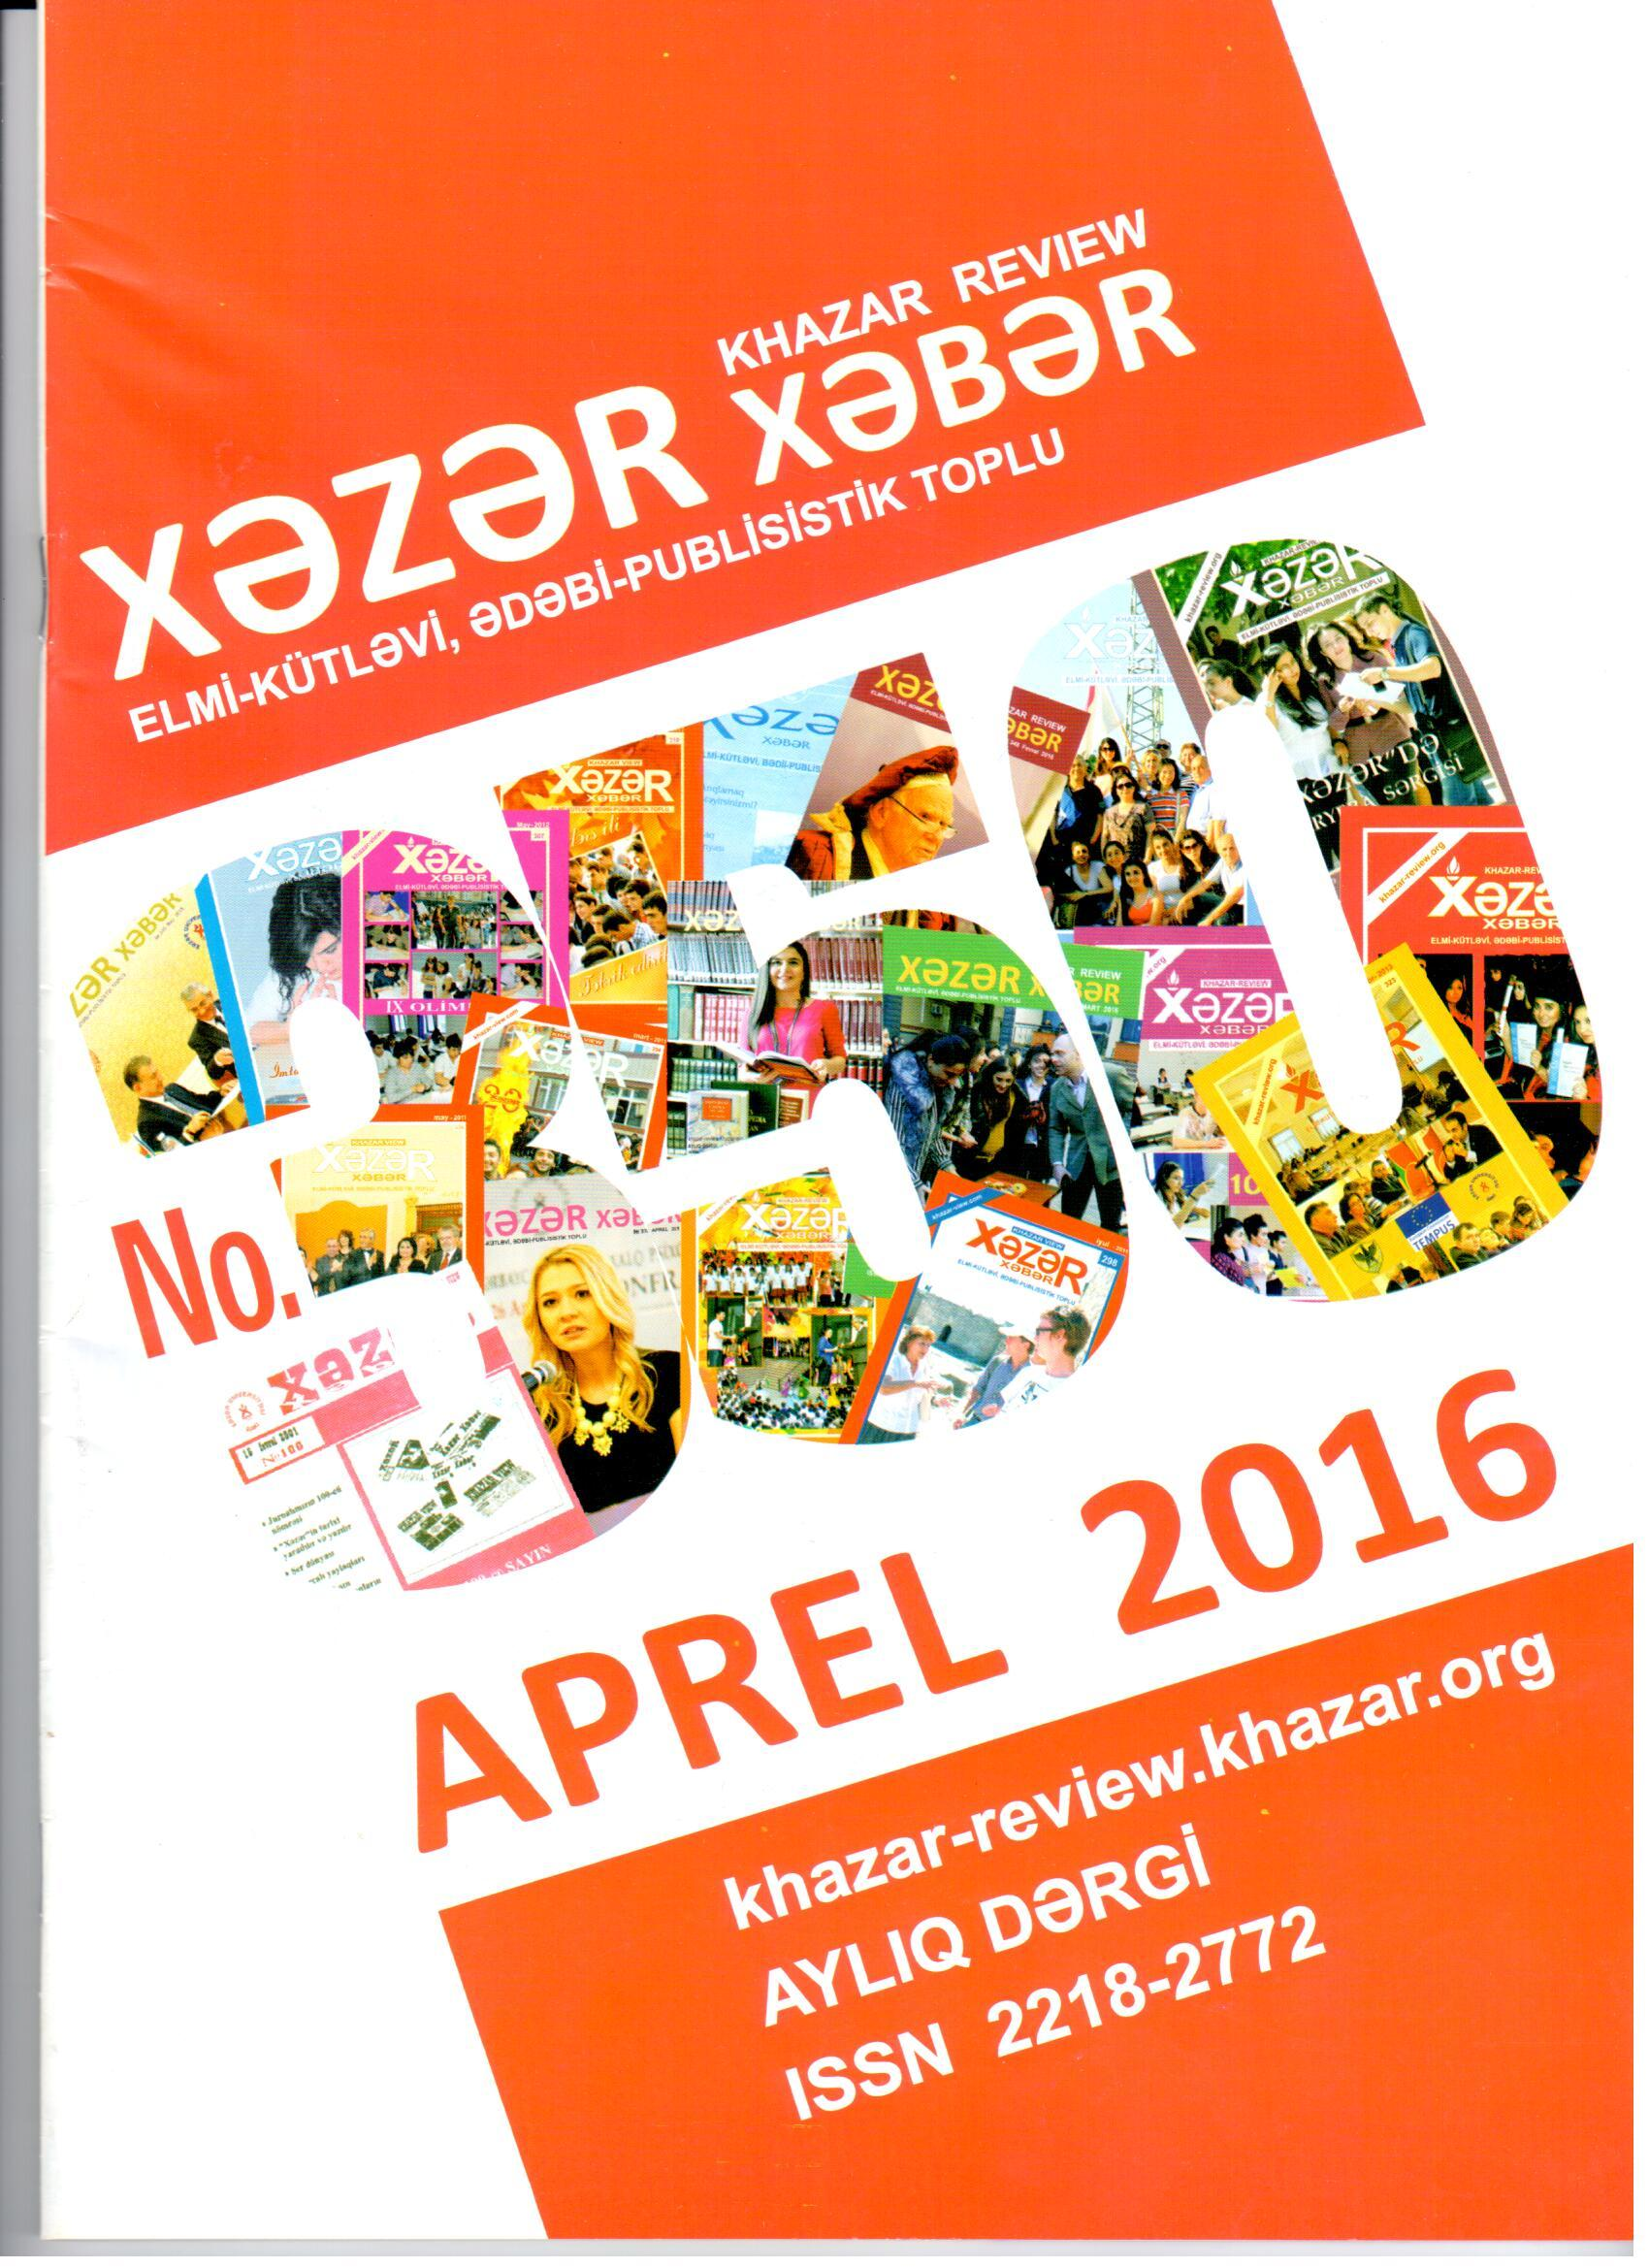 April Issue of Khazar Review Journal Printed